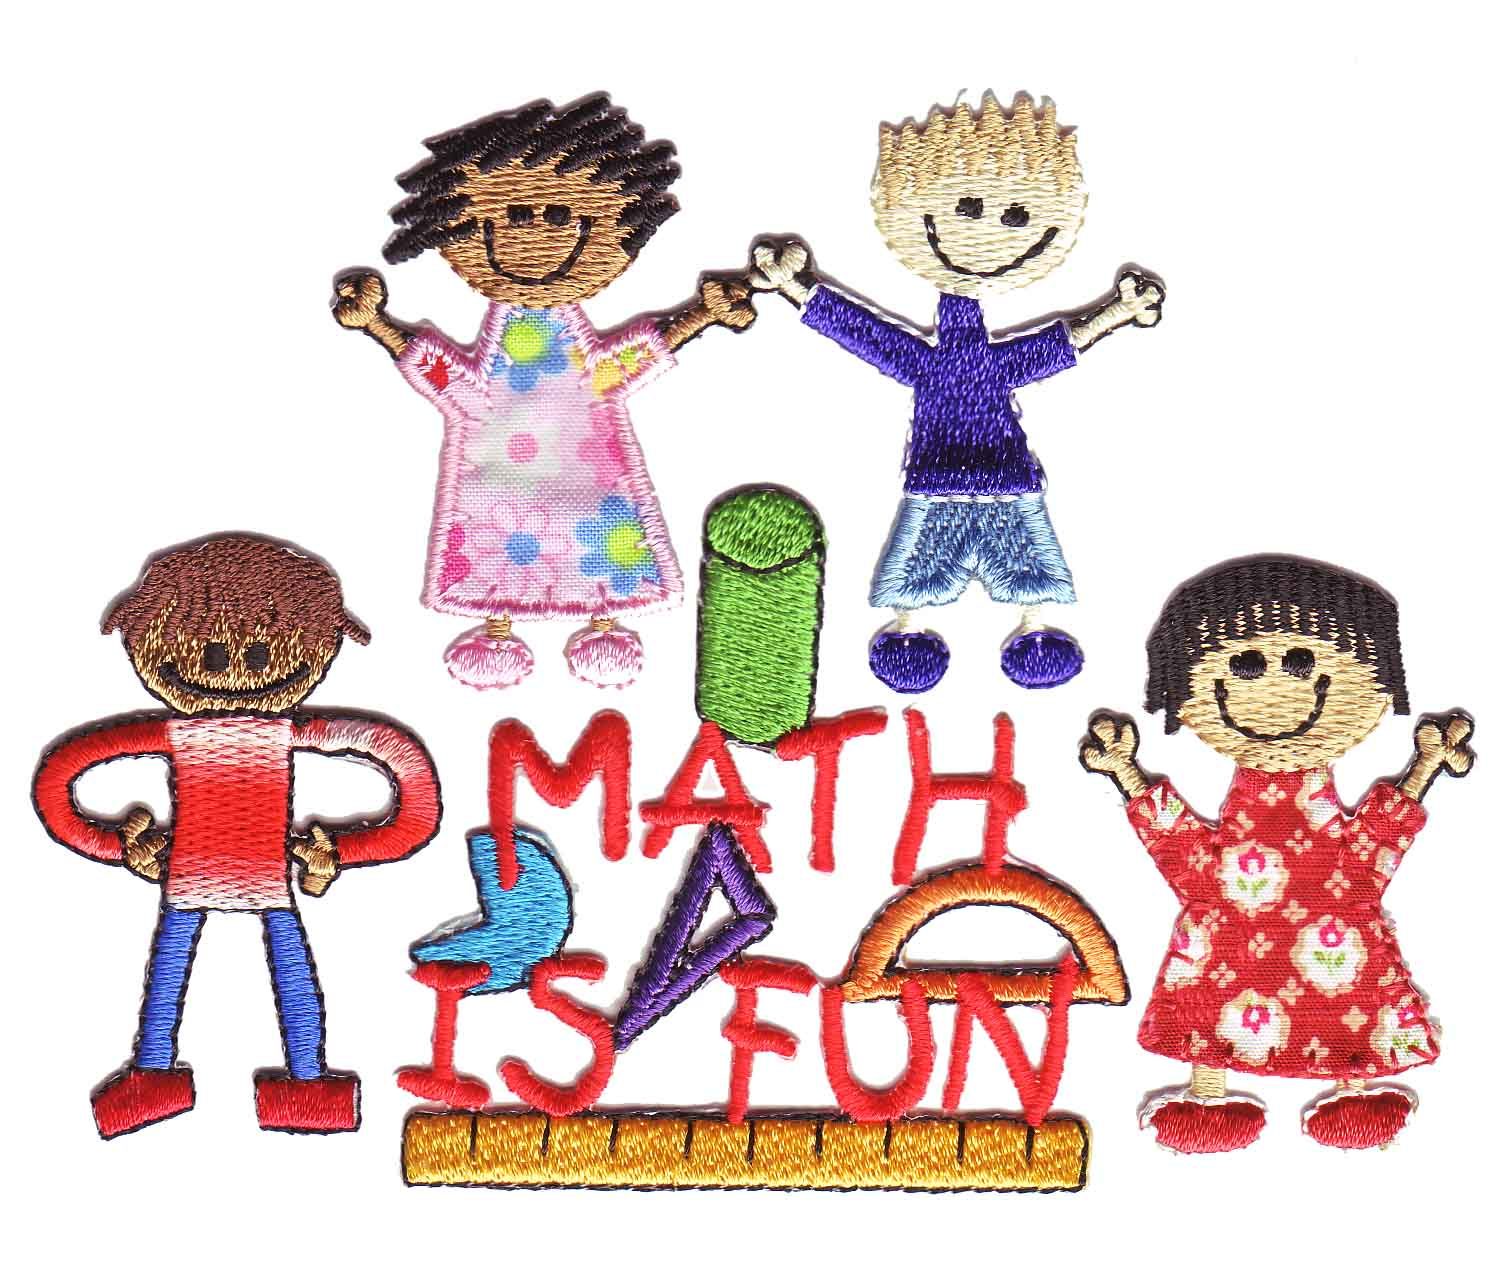 Math is Fun, so say these thread children